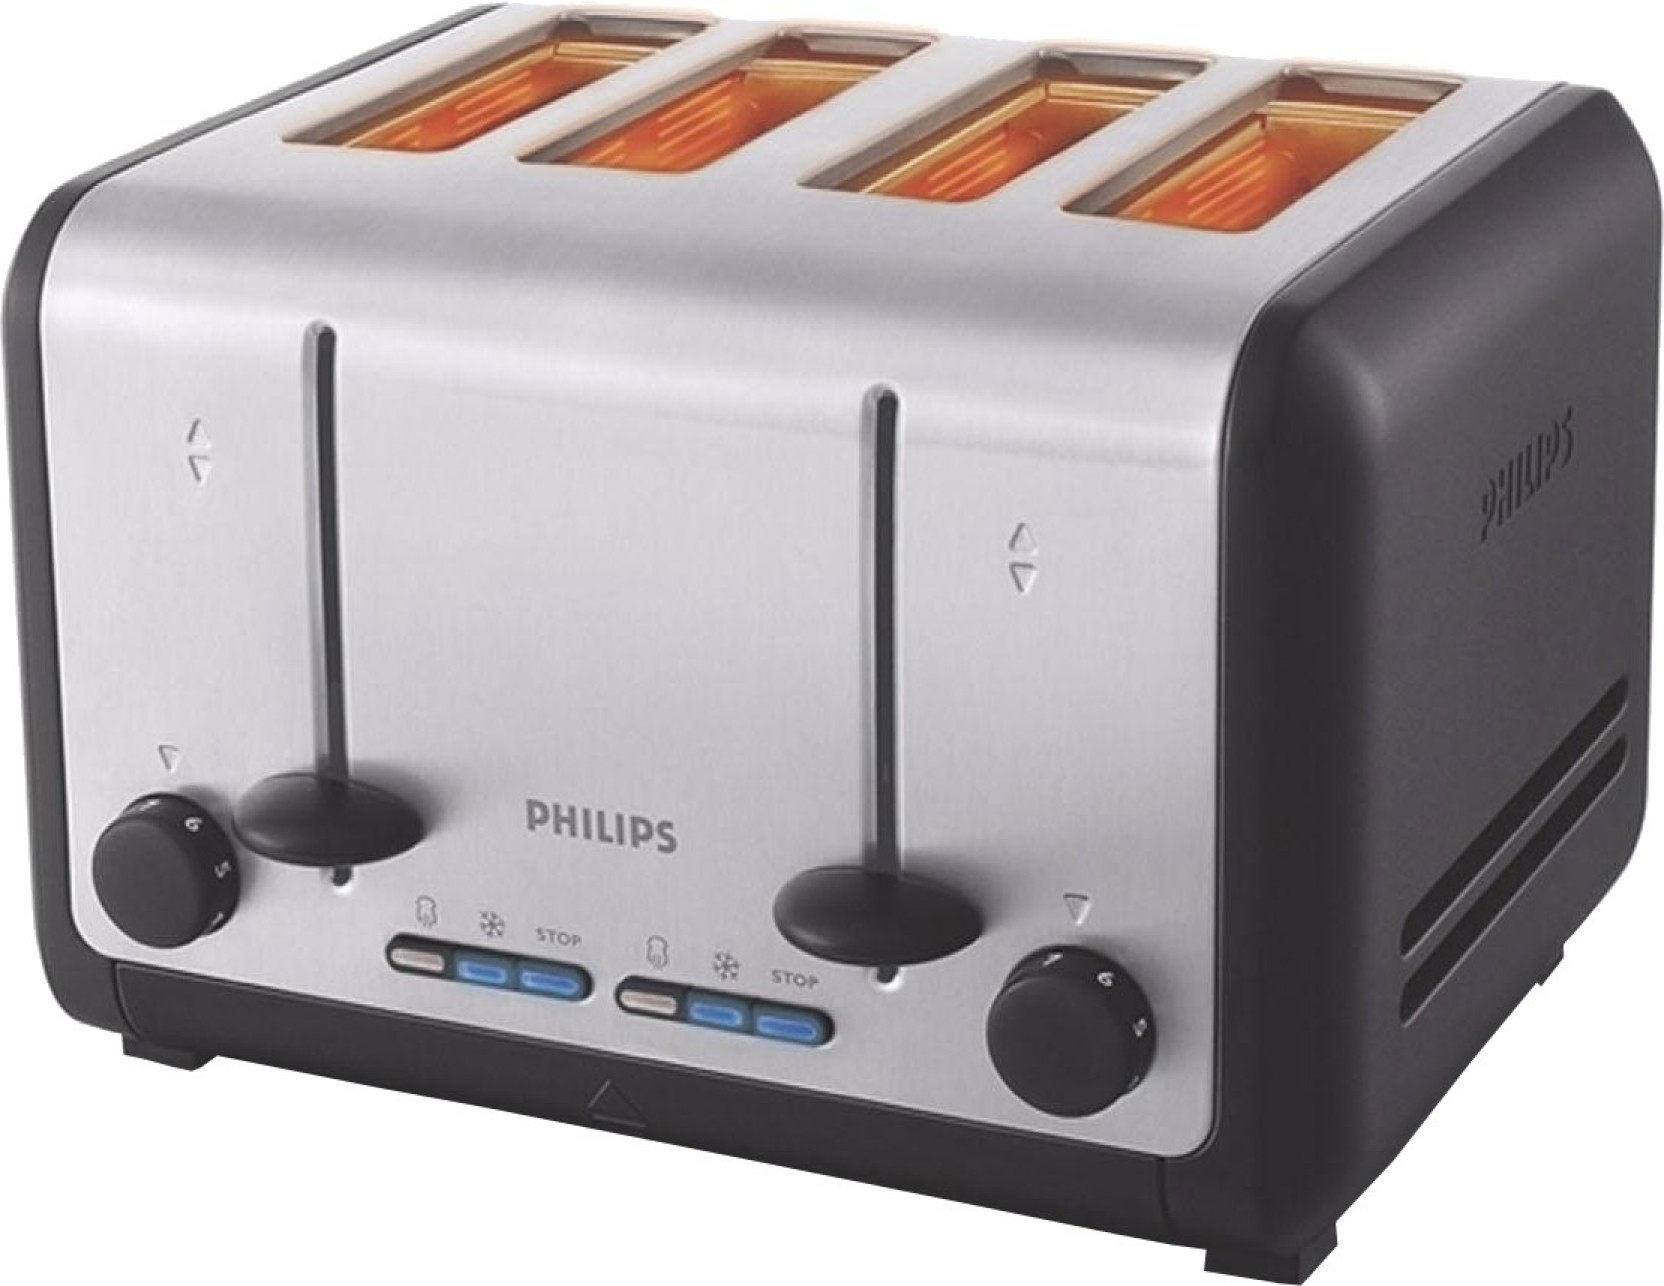 Original Pop Up Toaster ~ Philips hd w pop up toaster price in india